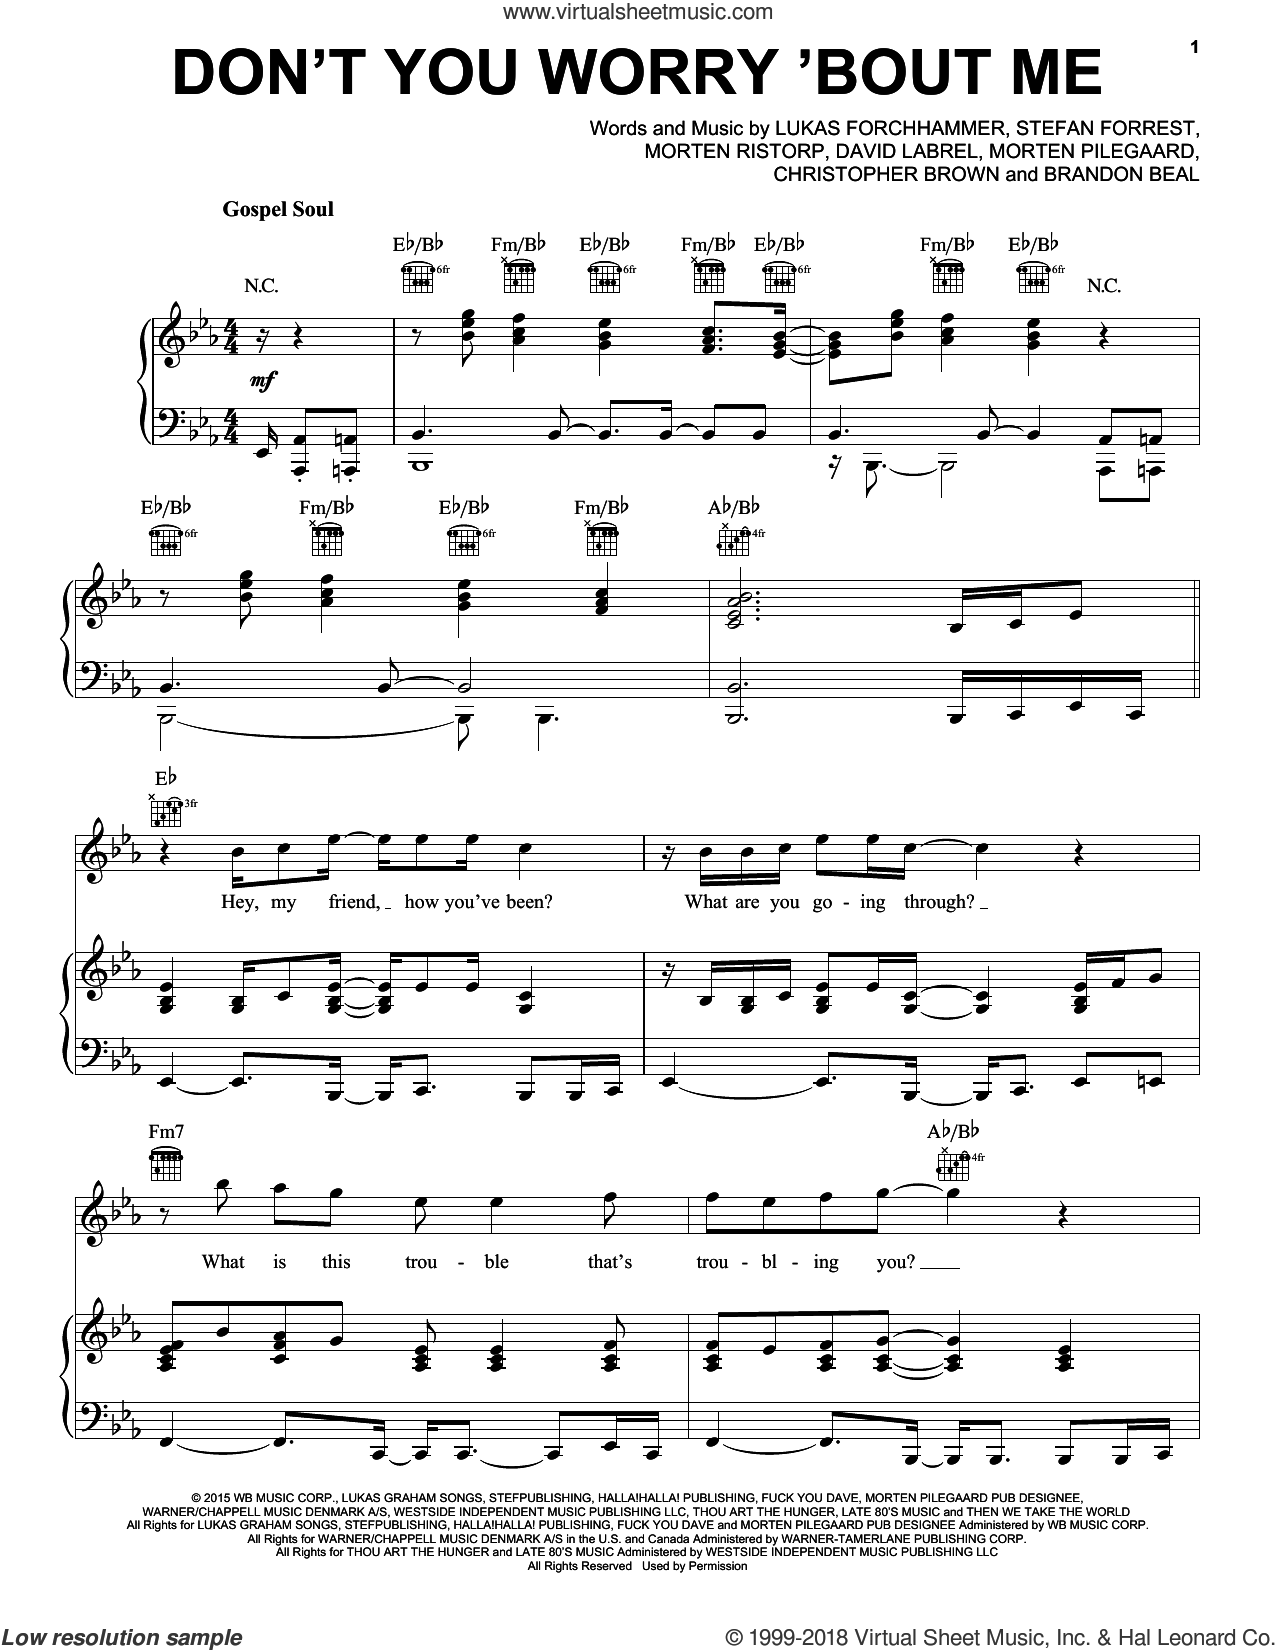 Don't You Worry 'Bout Me sheet music for voice, piano or guitar by Lukas Graham, Brandon Beal, Chris Brown, David Labrel, Lukas Forchhammer, Morten Pilegaard, Morten Ristorp and Stefan Forrest, intermediate skill level